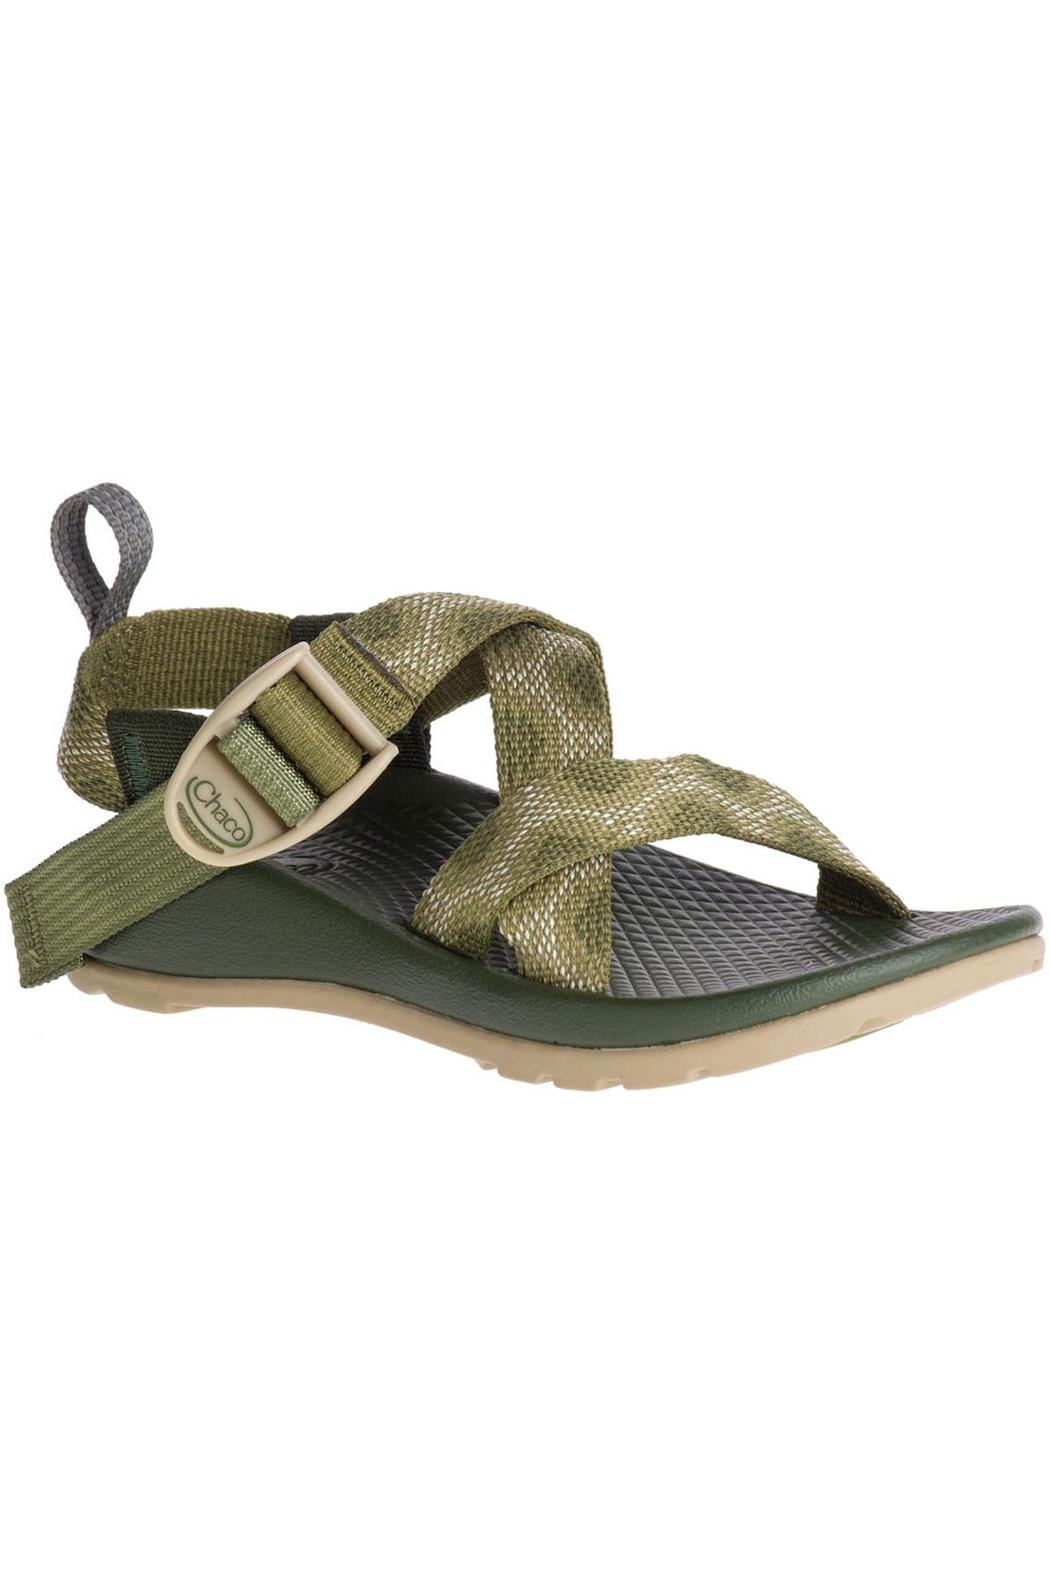 Chaco Kid's Z/1 Sandal - Front Cropped Image